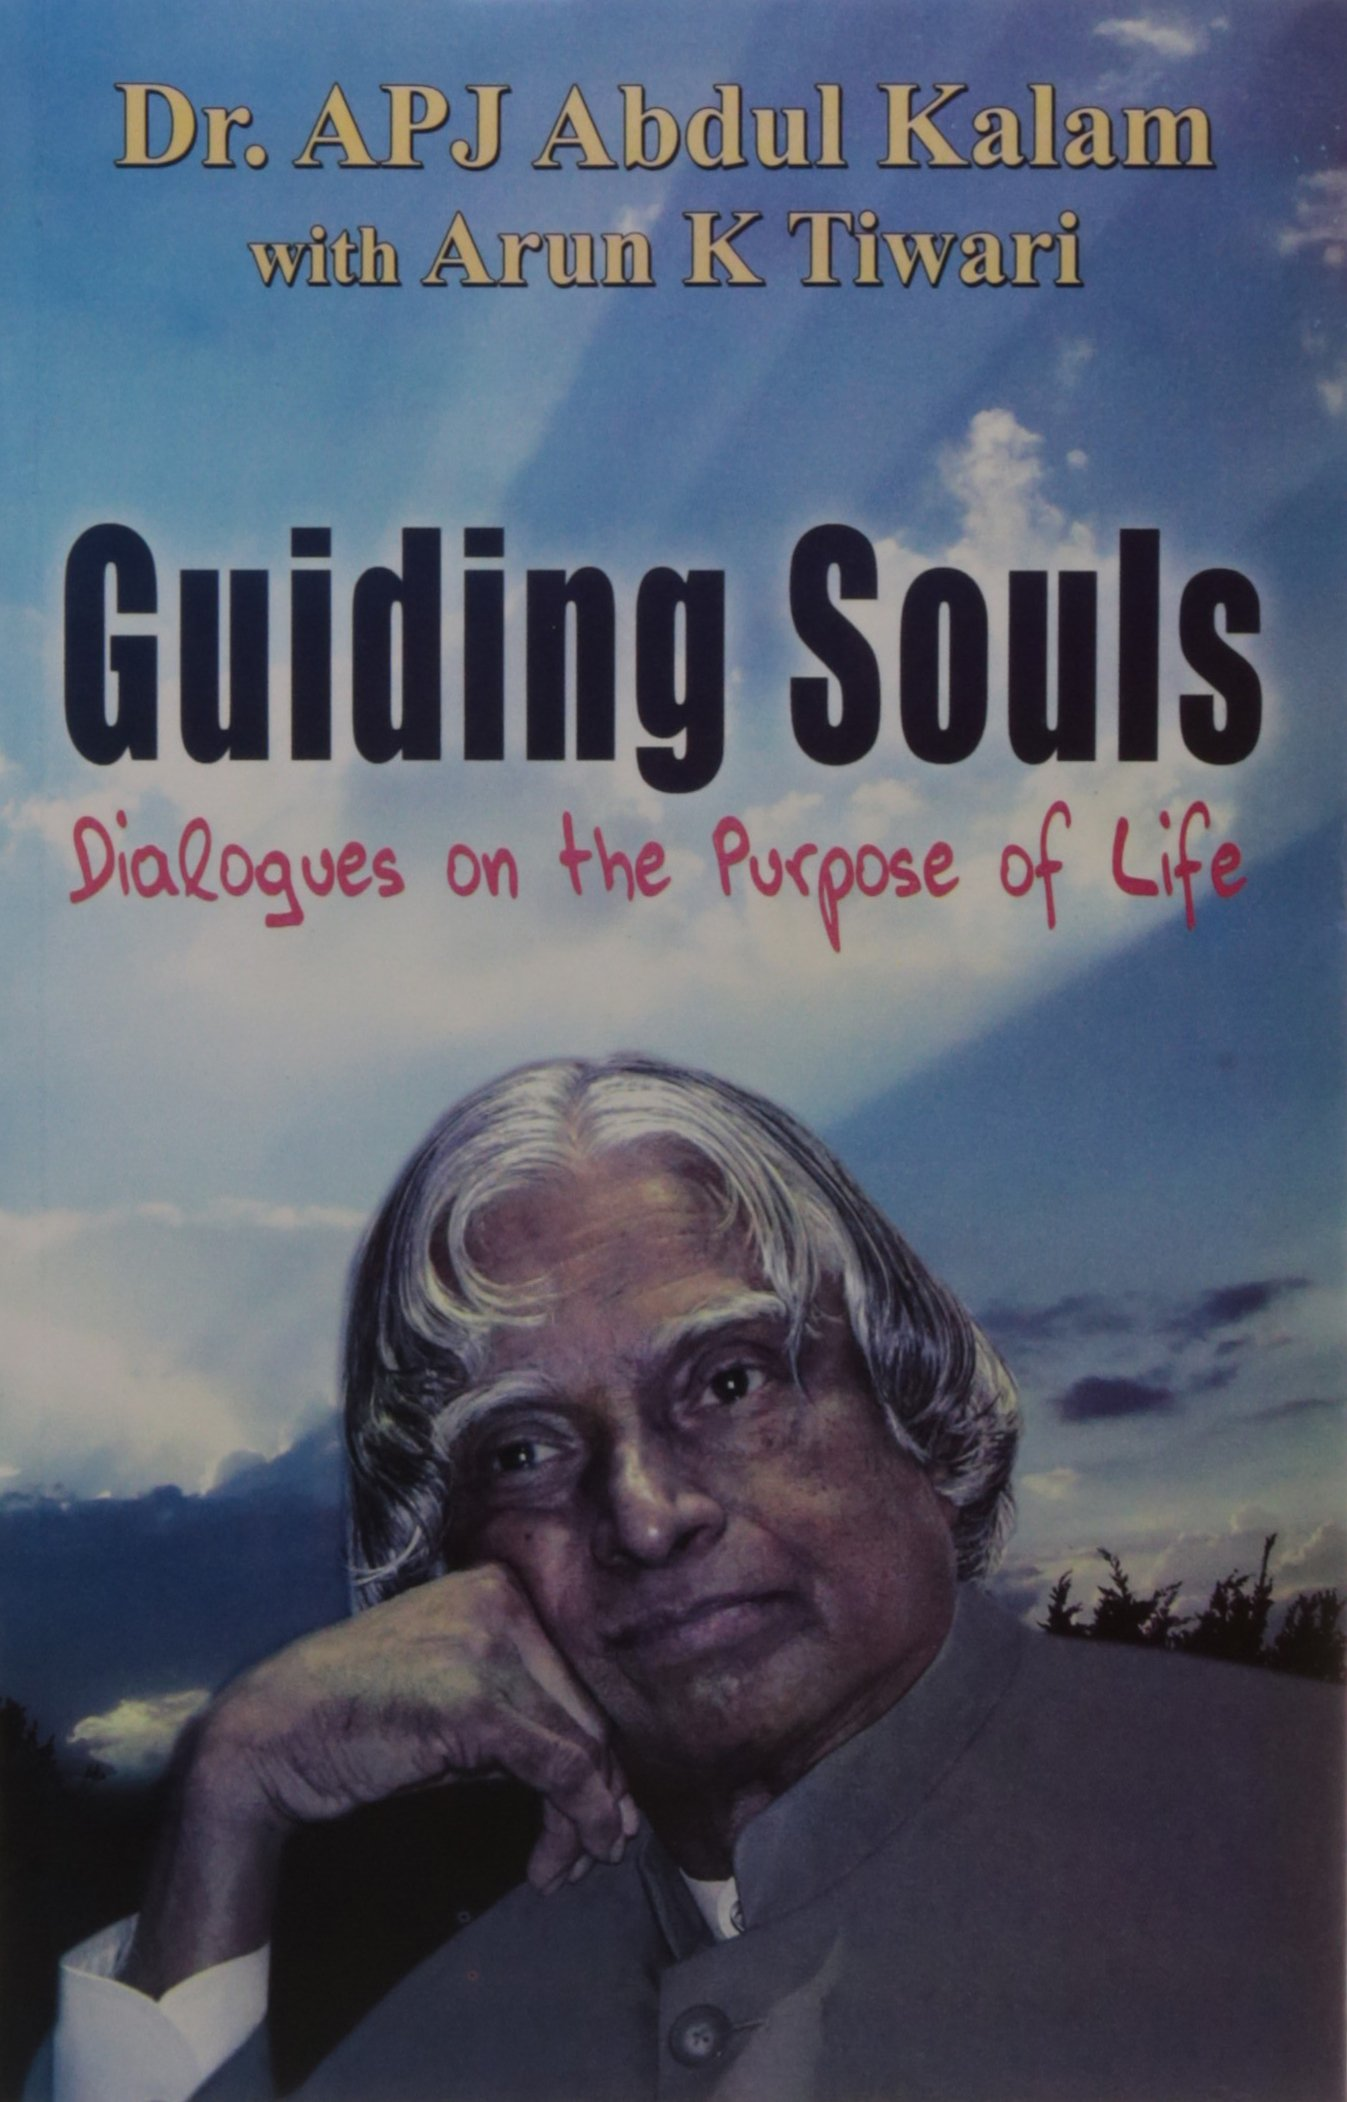 Guiding Souls dialogues on the purpose of life